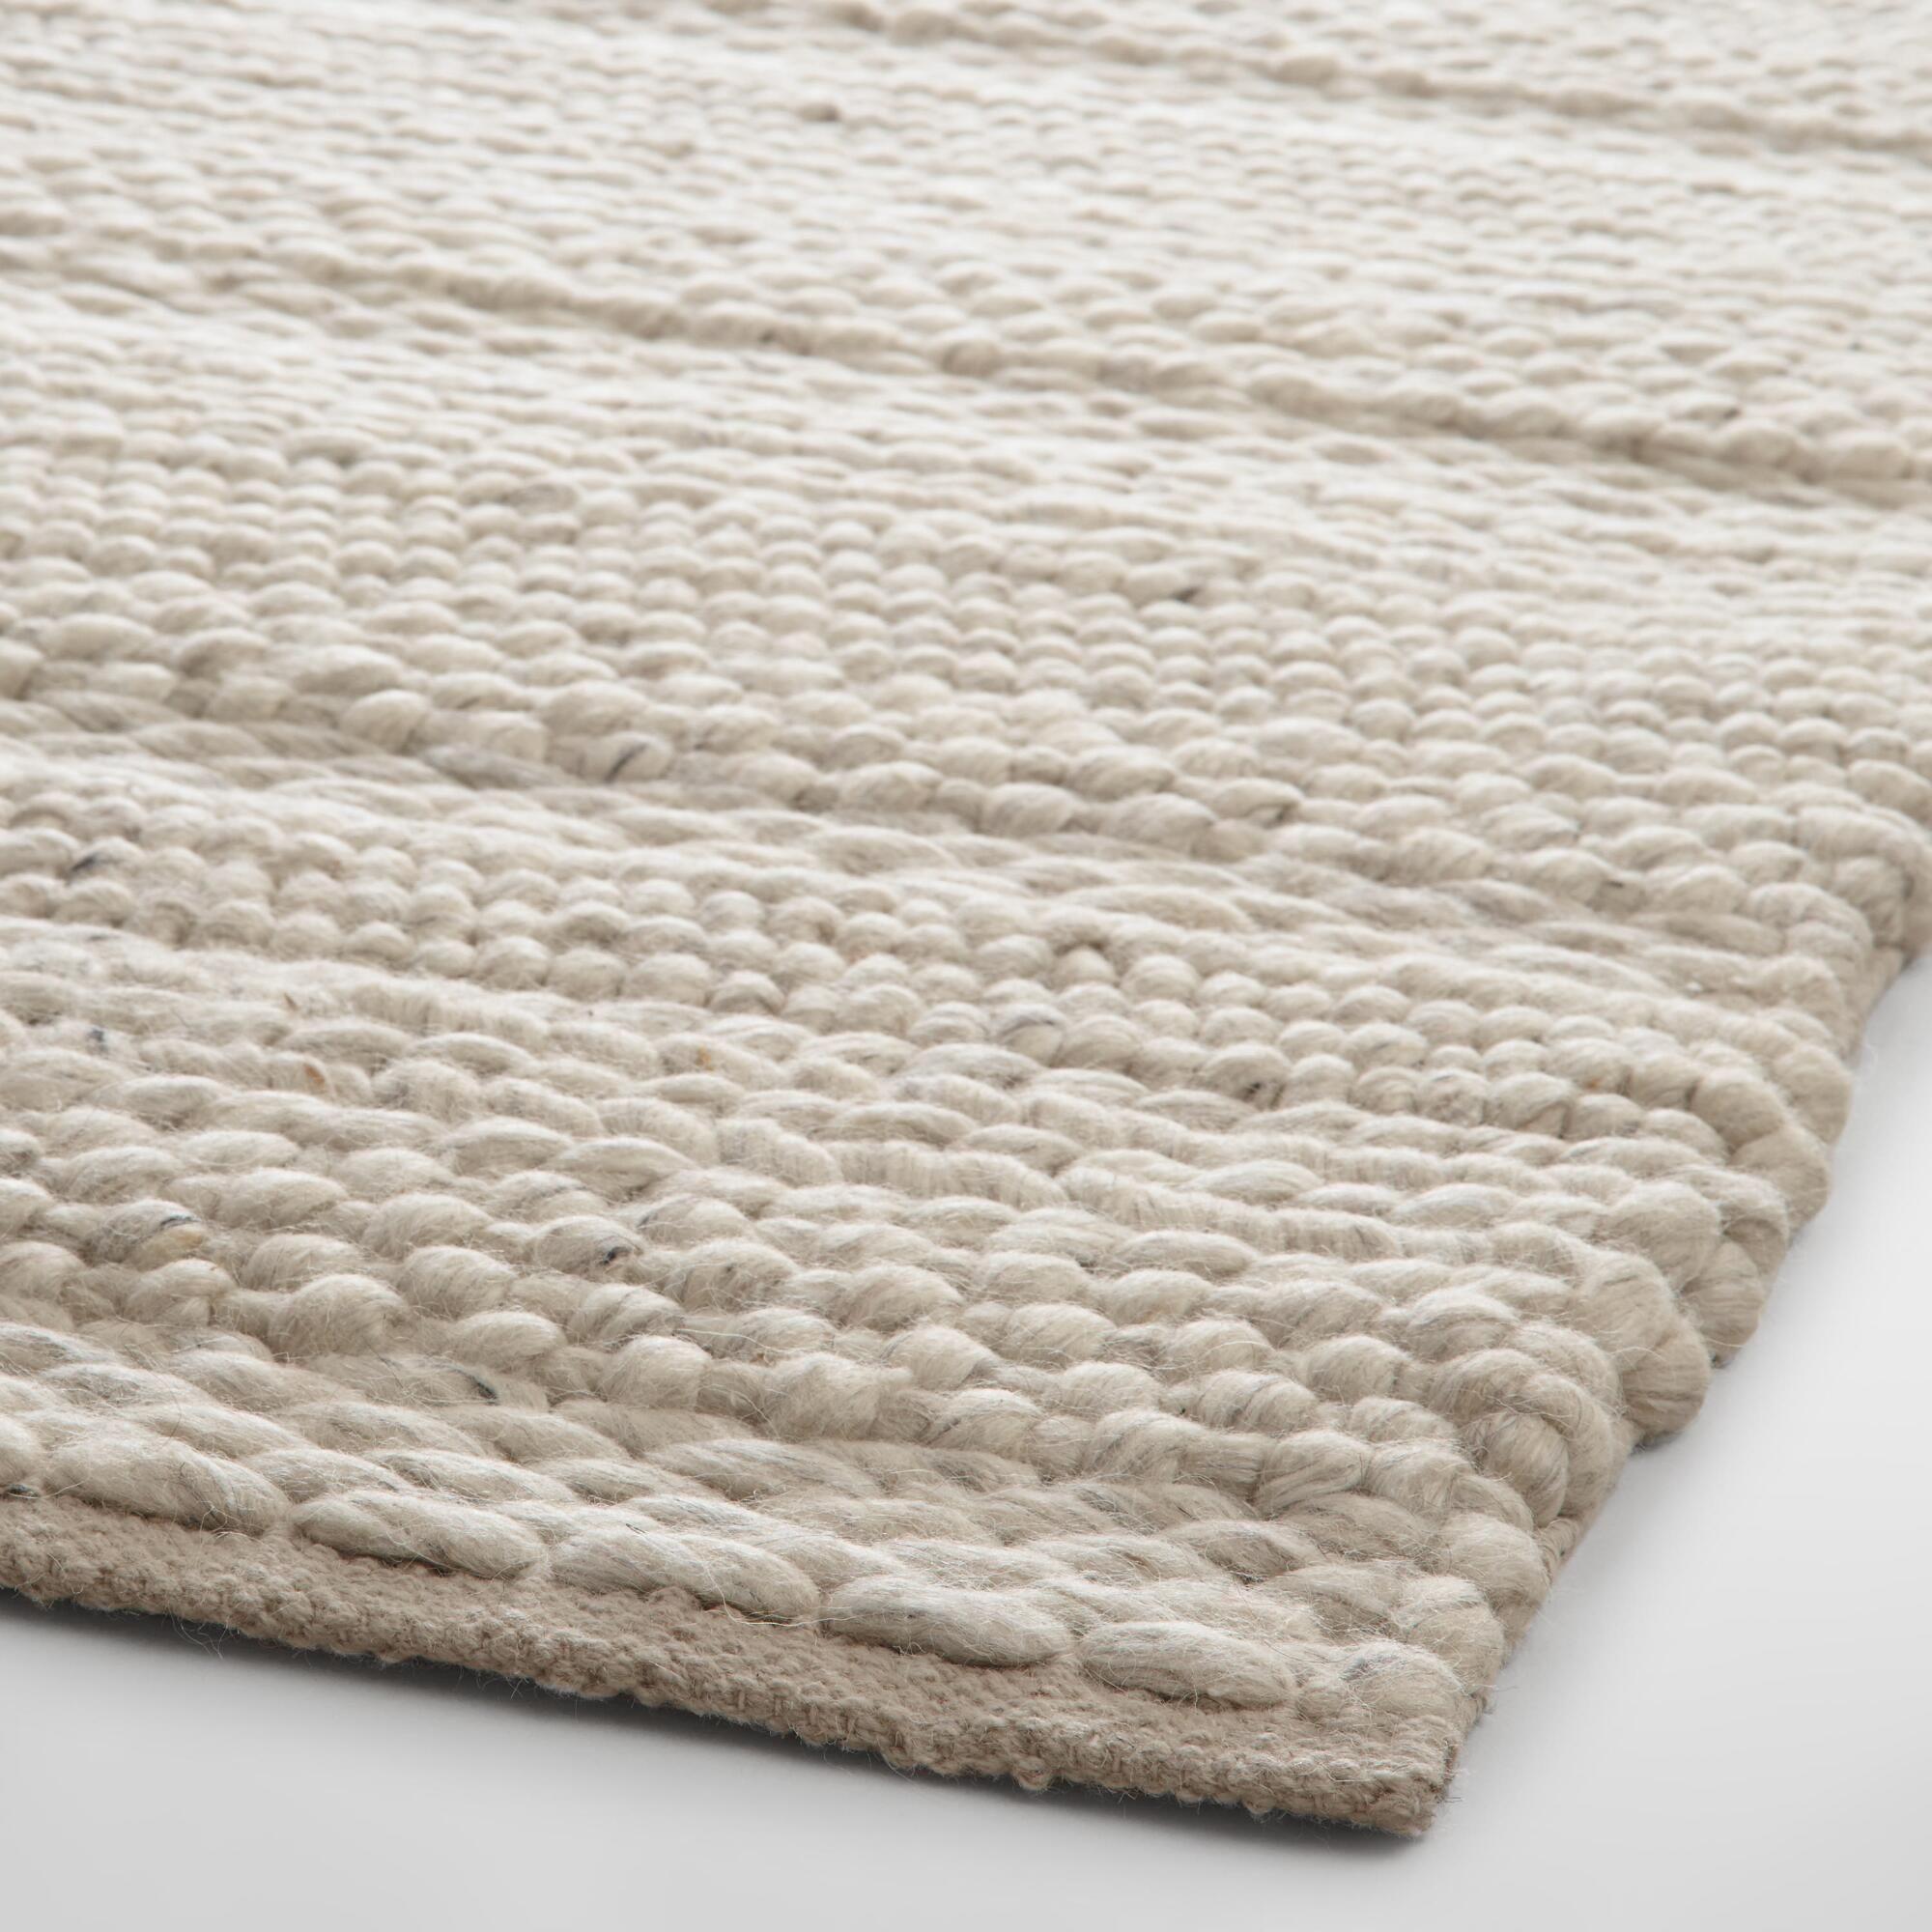 Our Hand Woven Wool Area Rug Boasts A Plush Incredibly